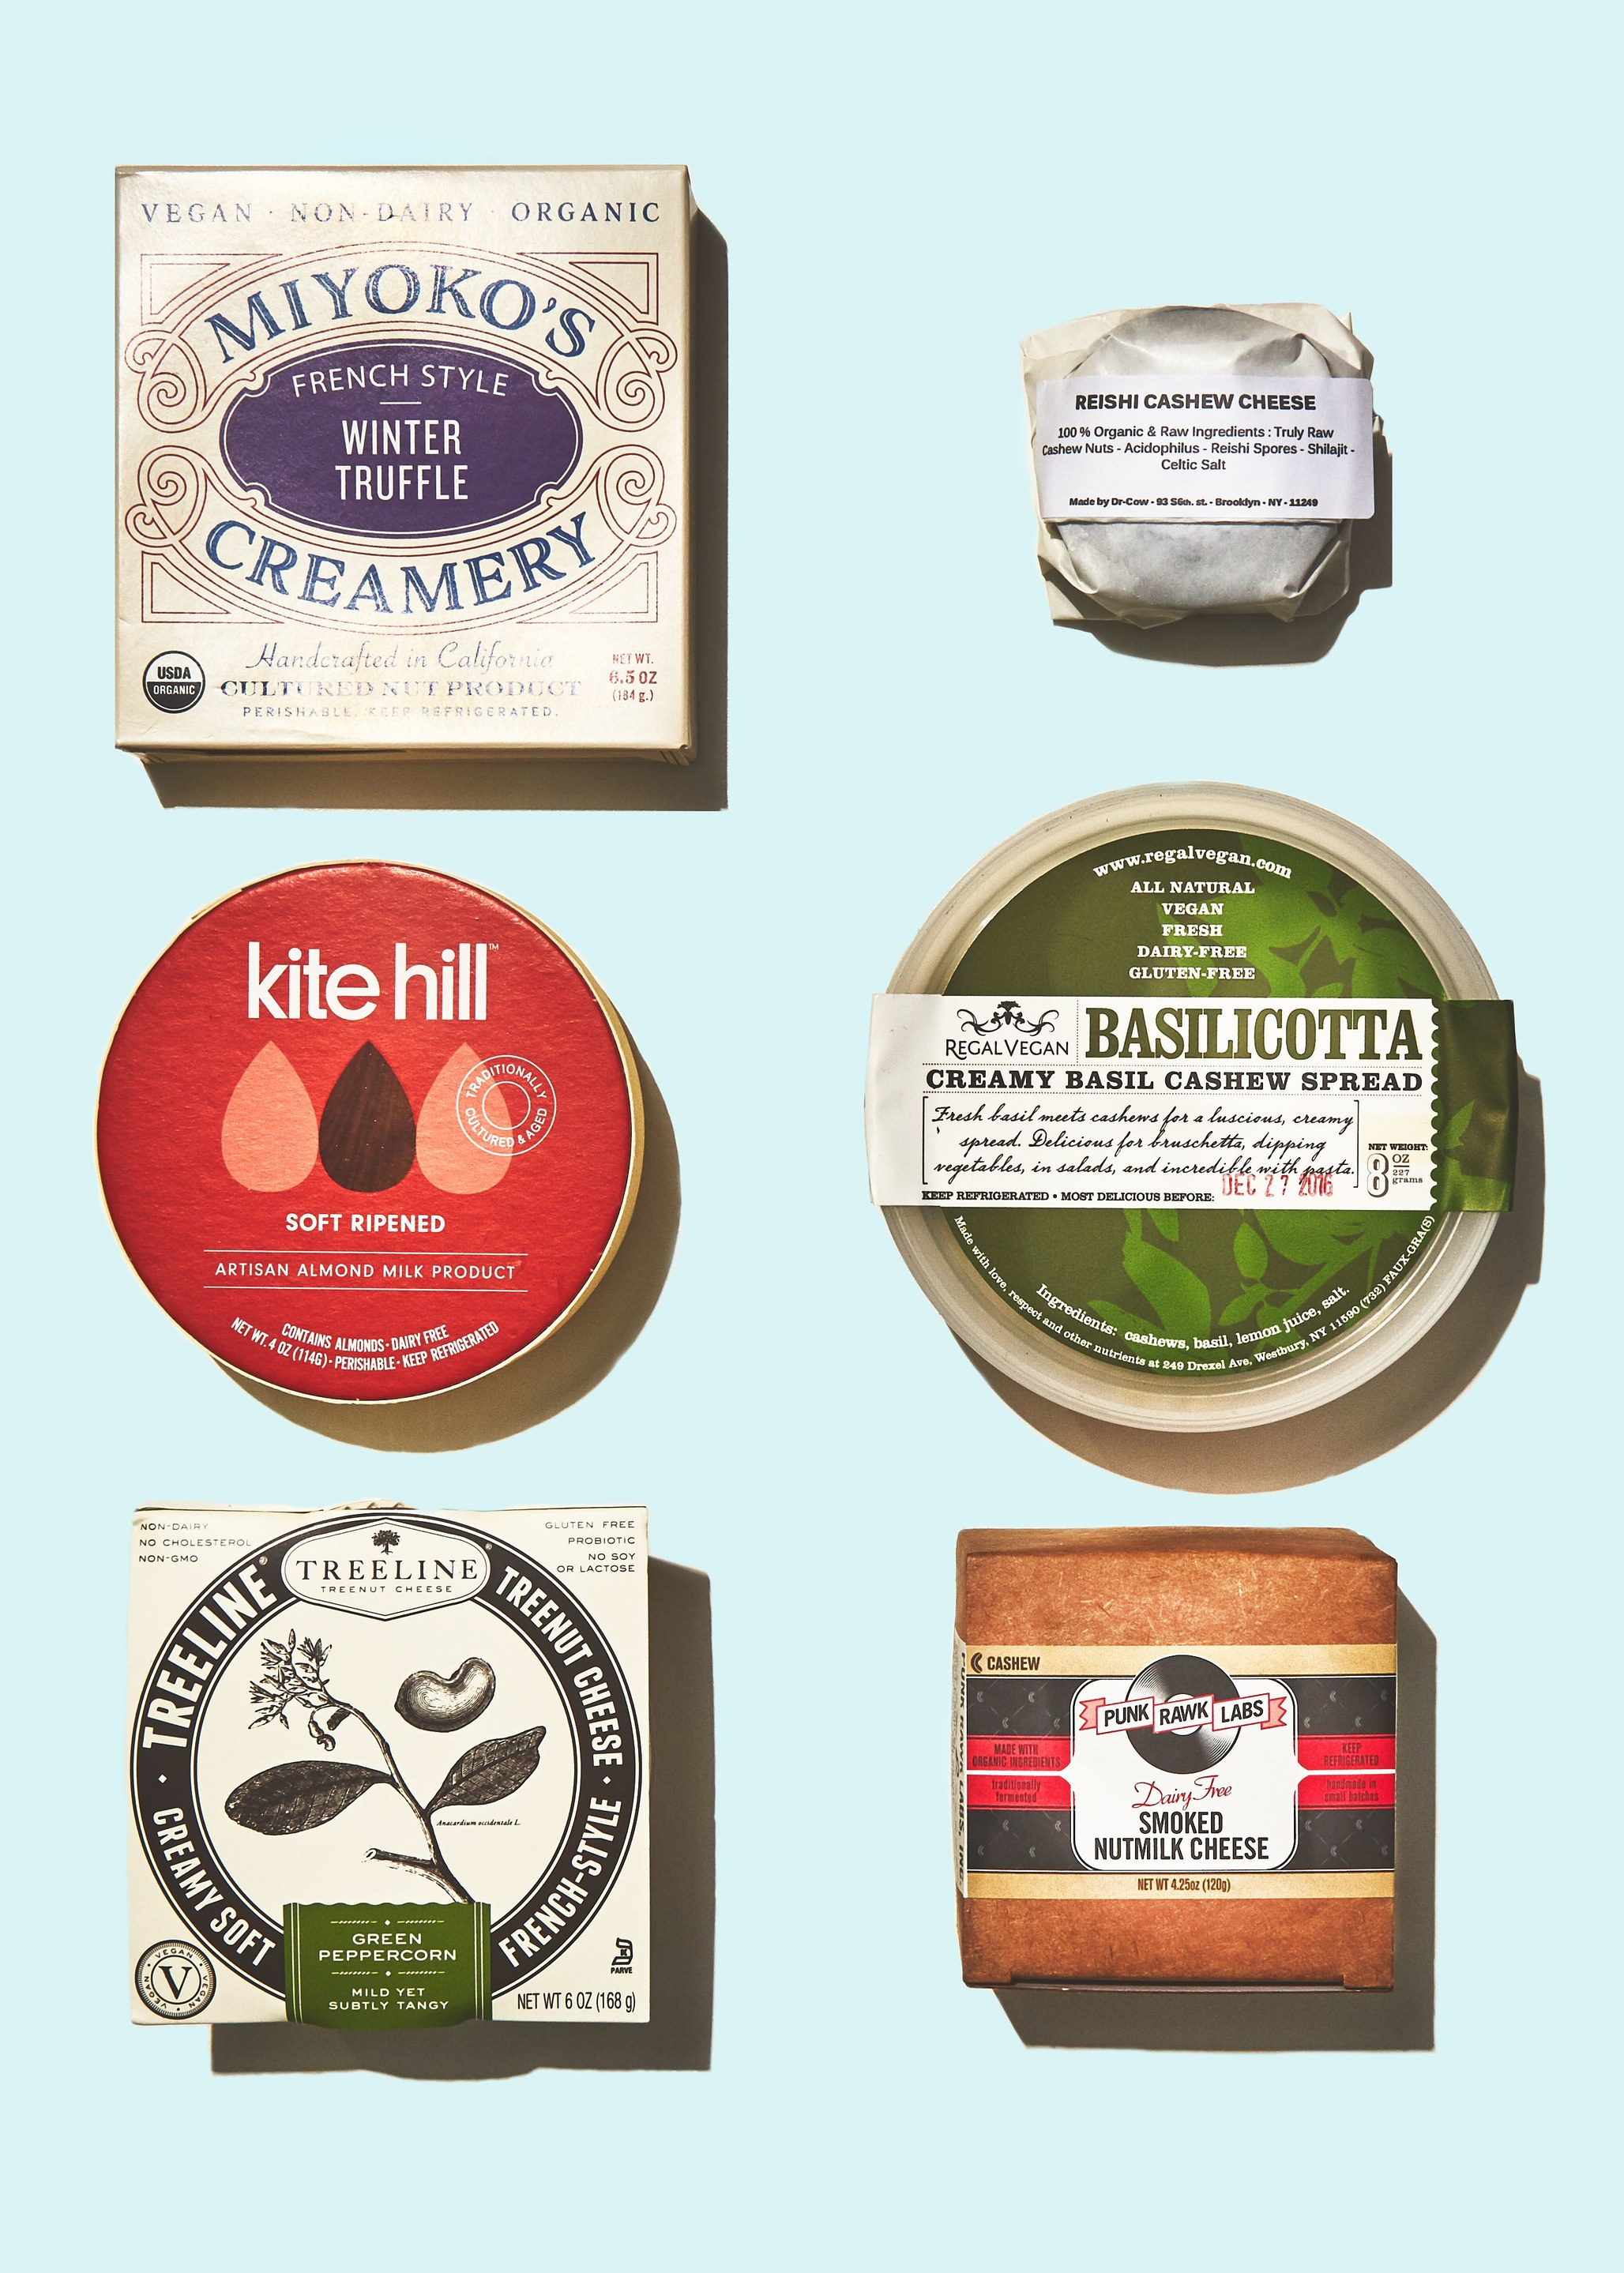 Fermented Nuts Aren't Cheese, And That's Okay  by Tia Keenan